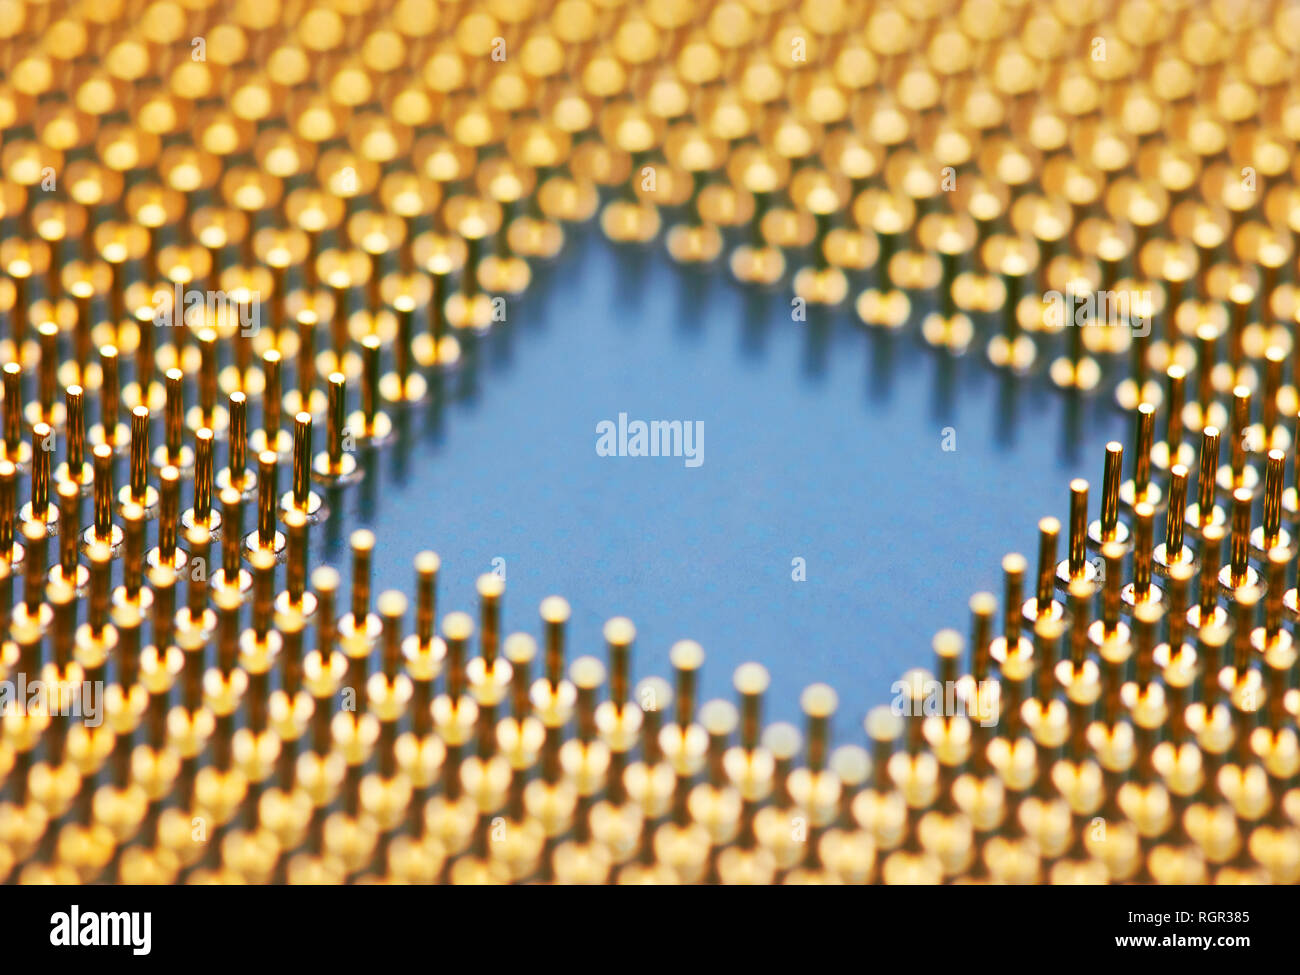 Computer processors CPU, closeup - Stock Image